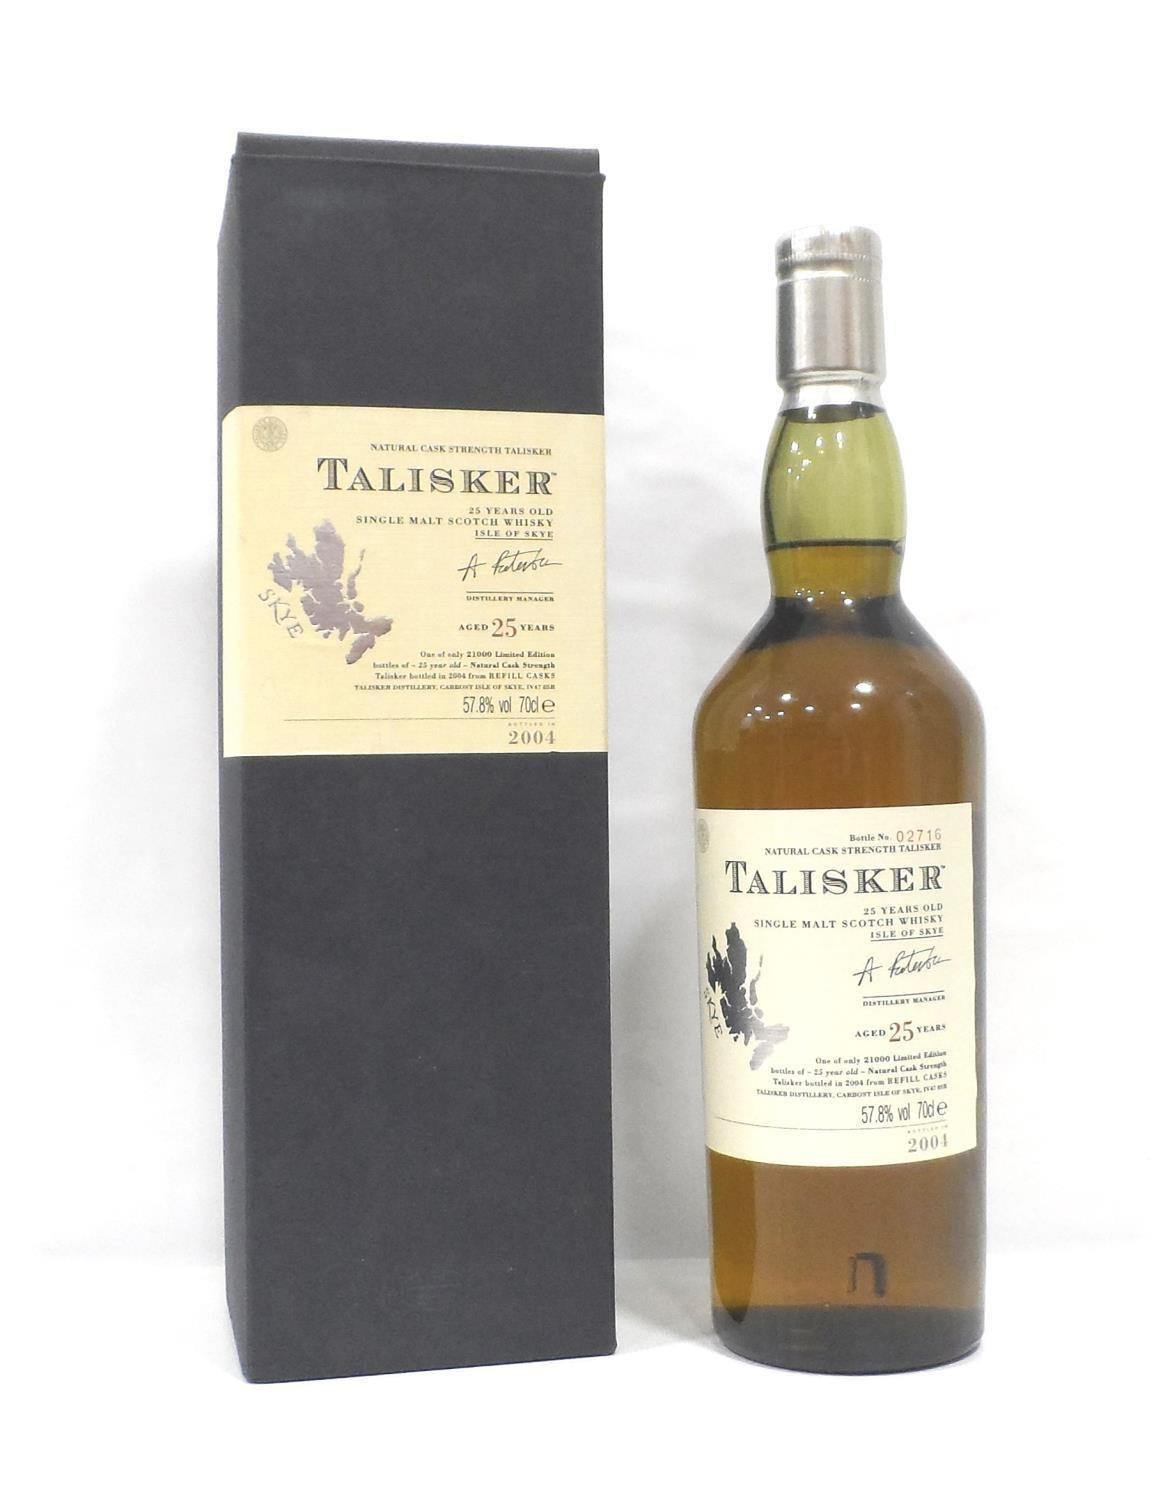 TALISKER 25YO This bottle is a prime example of why Talisker is one of my favourite drams.